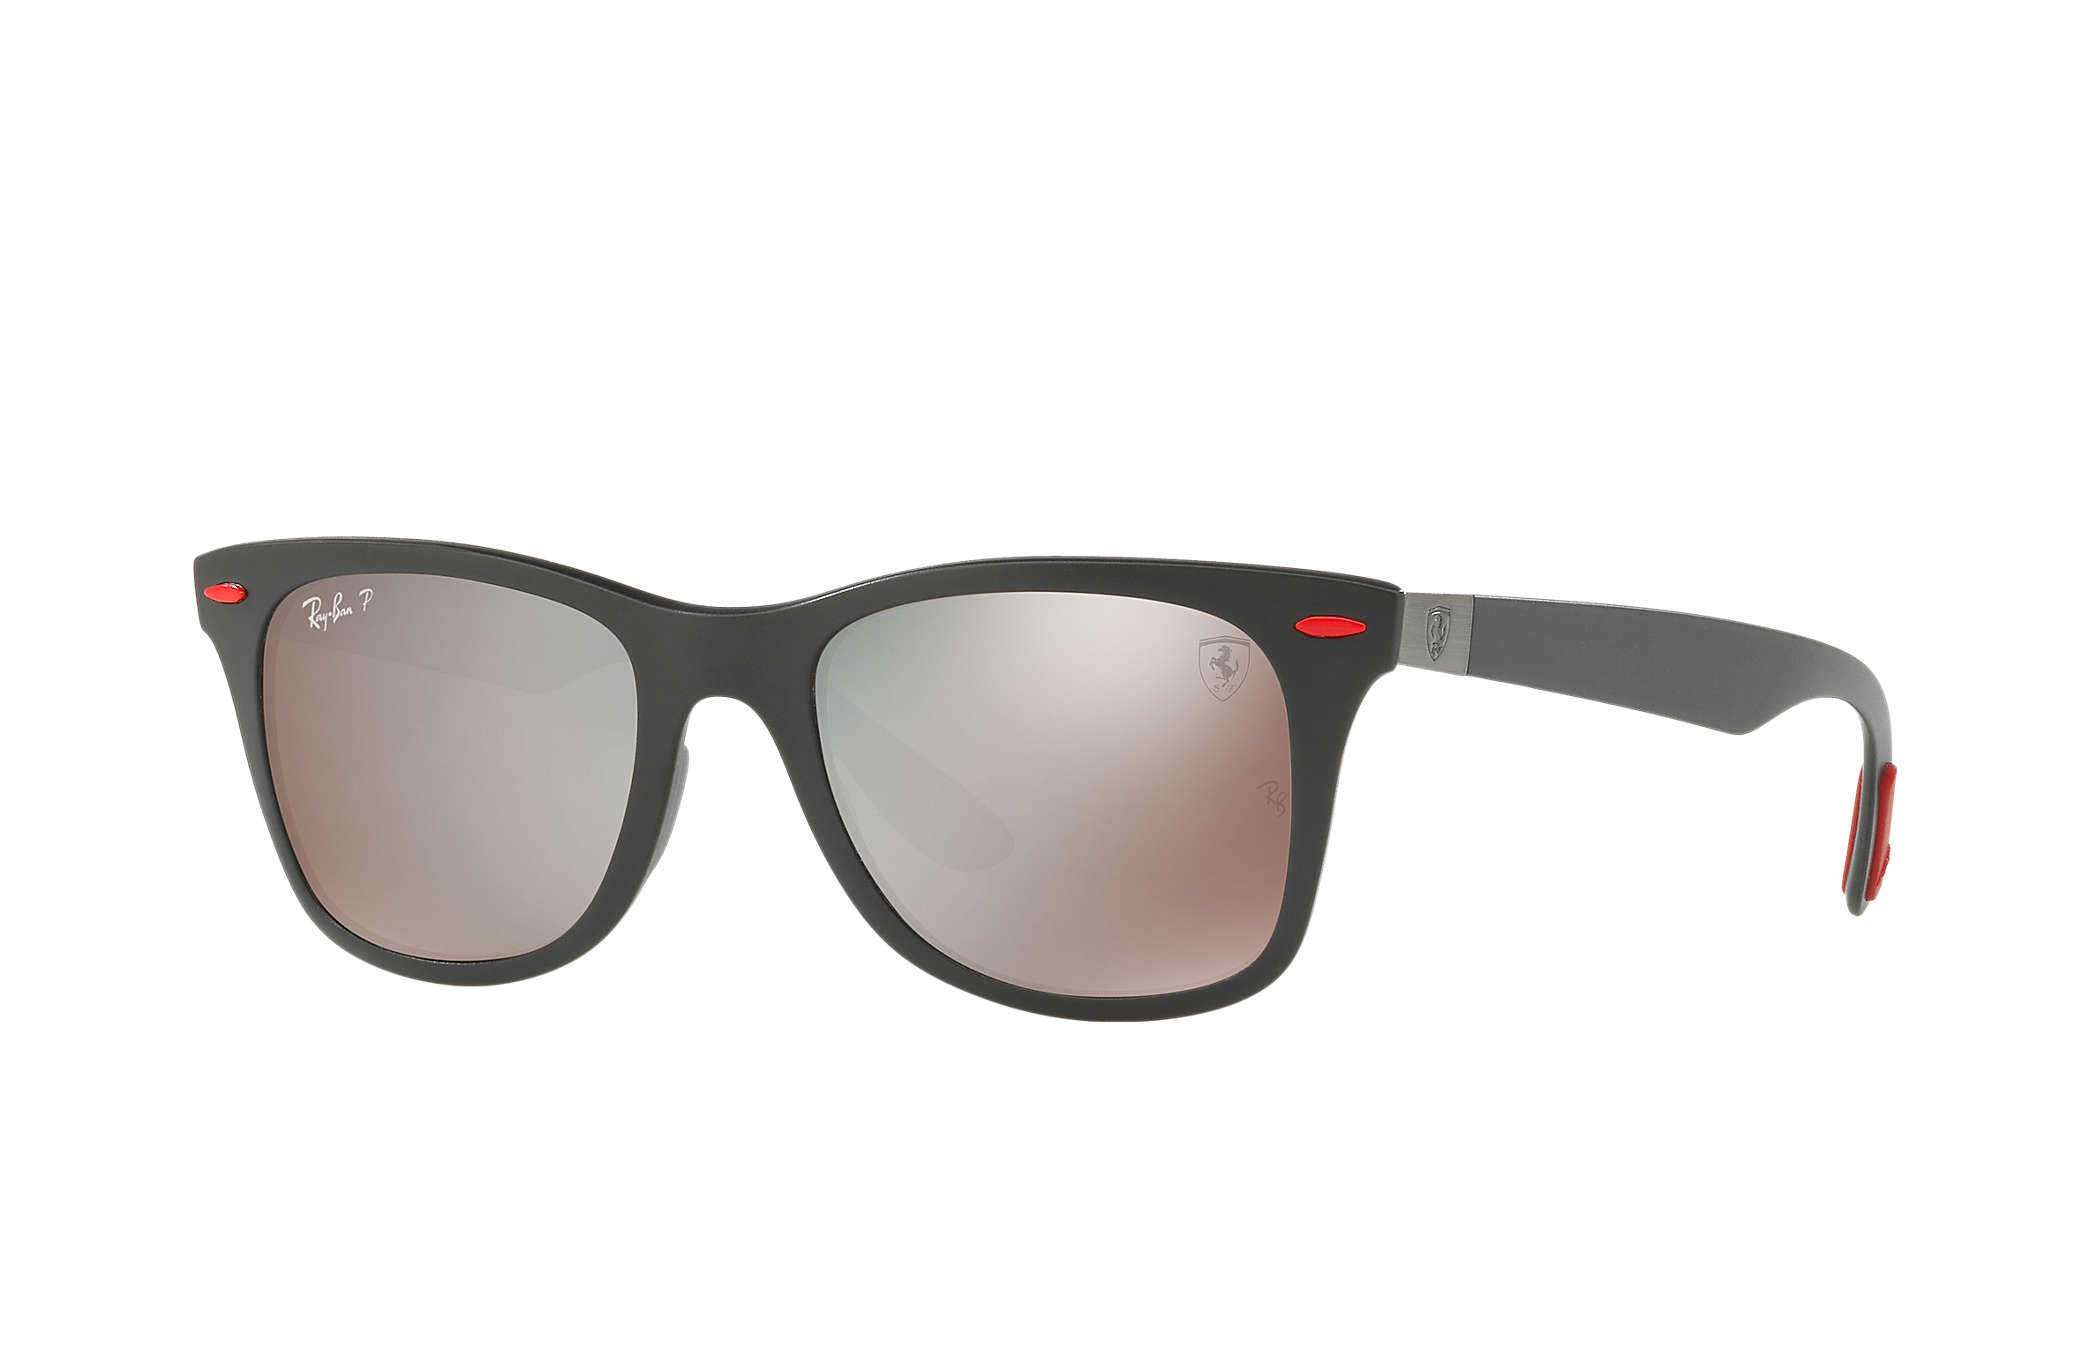 ae310126a4 Ray Ban 0RB4195M SCUDERIA FERRARI COLLECTION F602H2 Black Red - Silver  Mirror Chromance Polarized